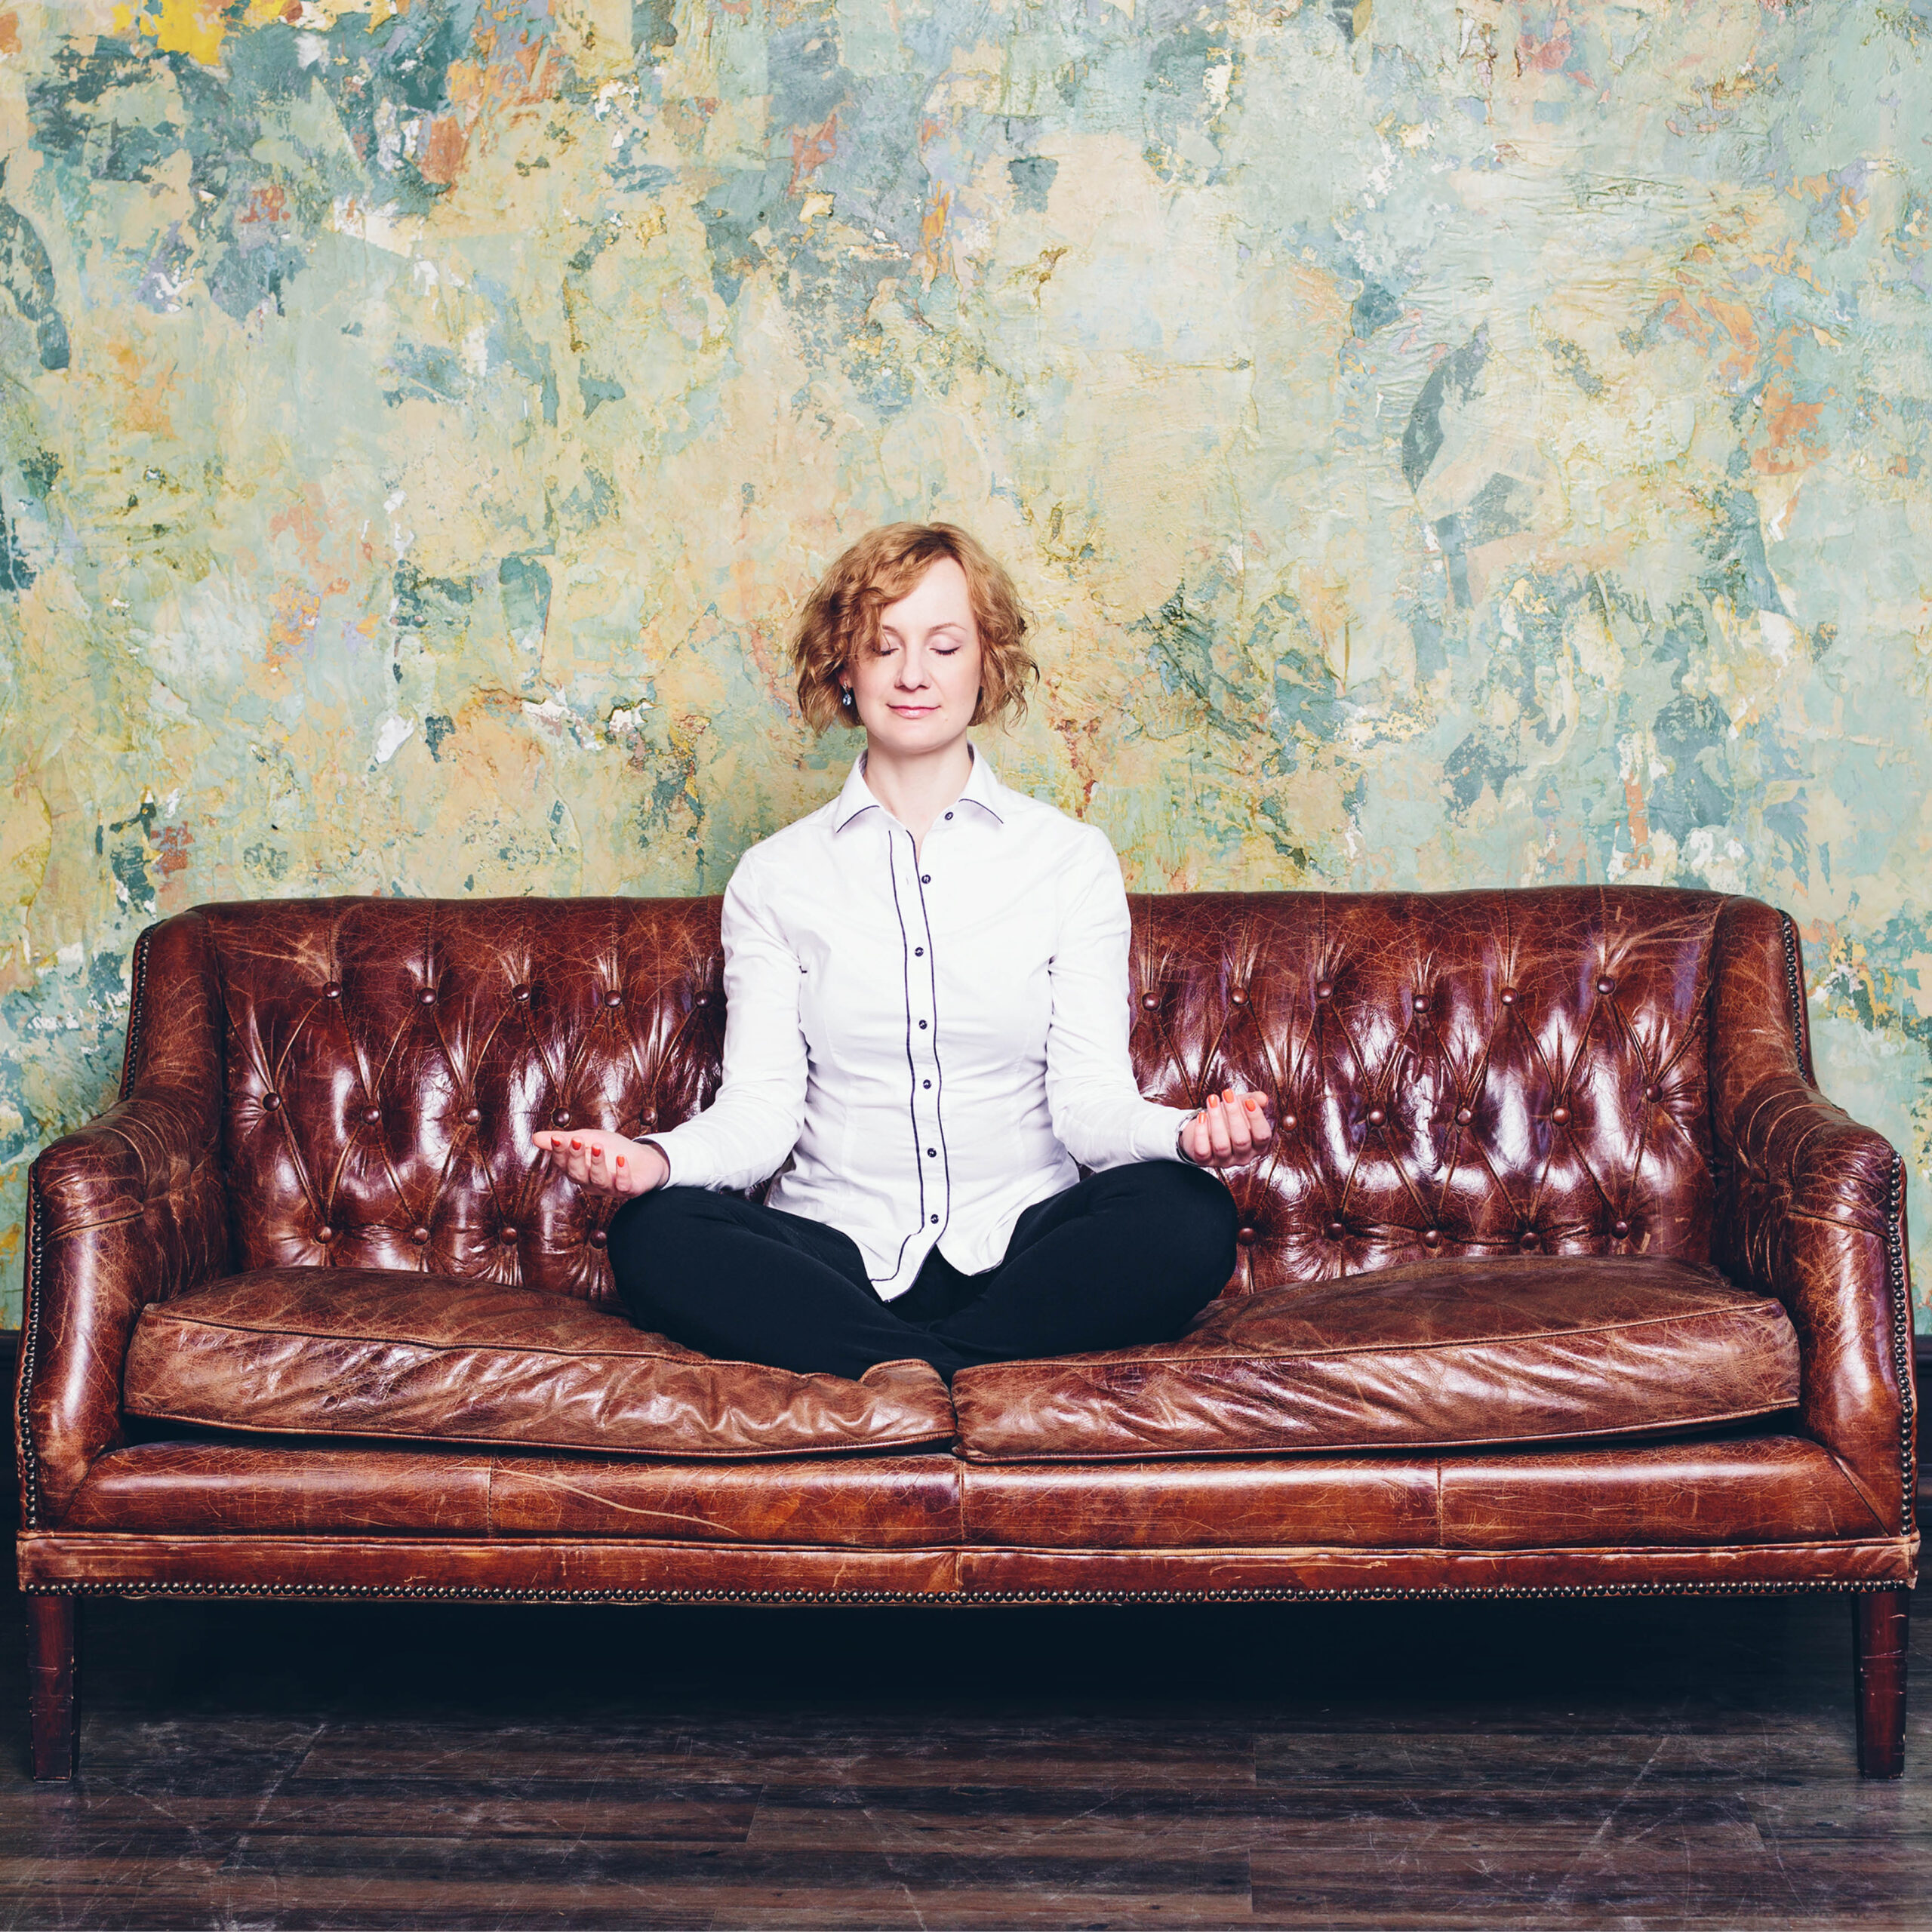 woman meditating on old couch with colourful wall behind